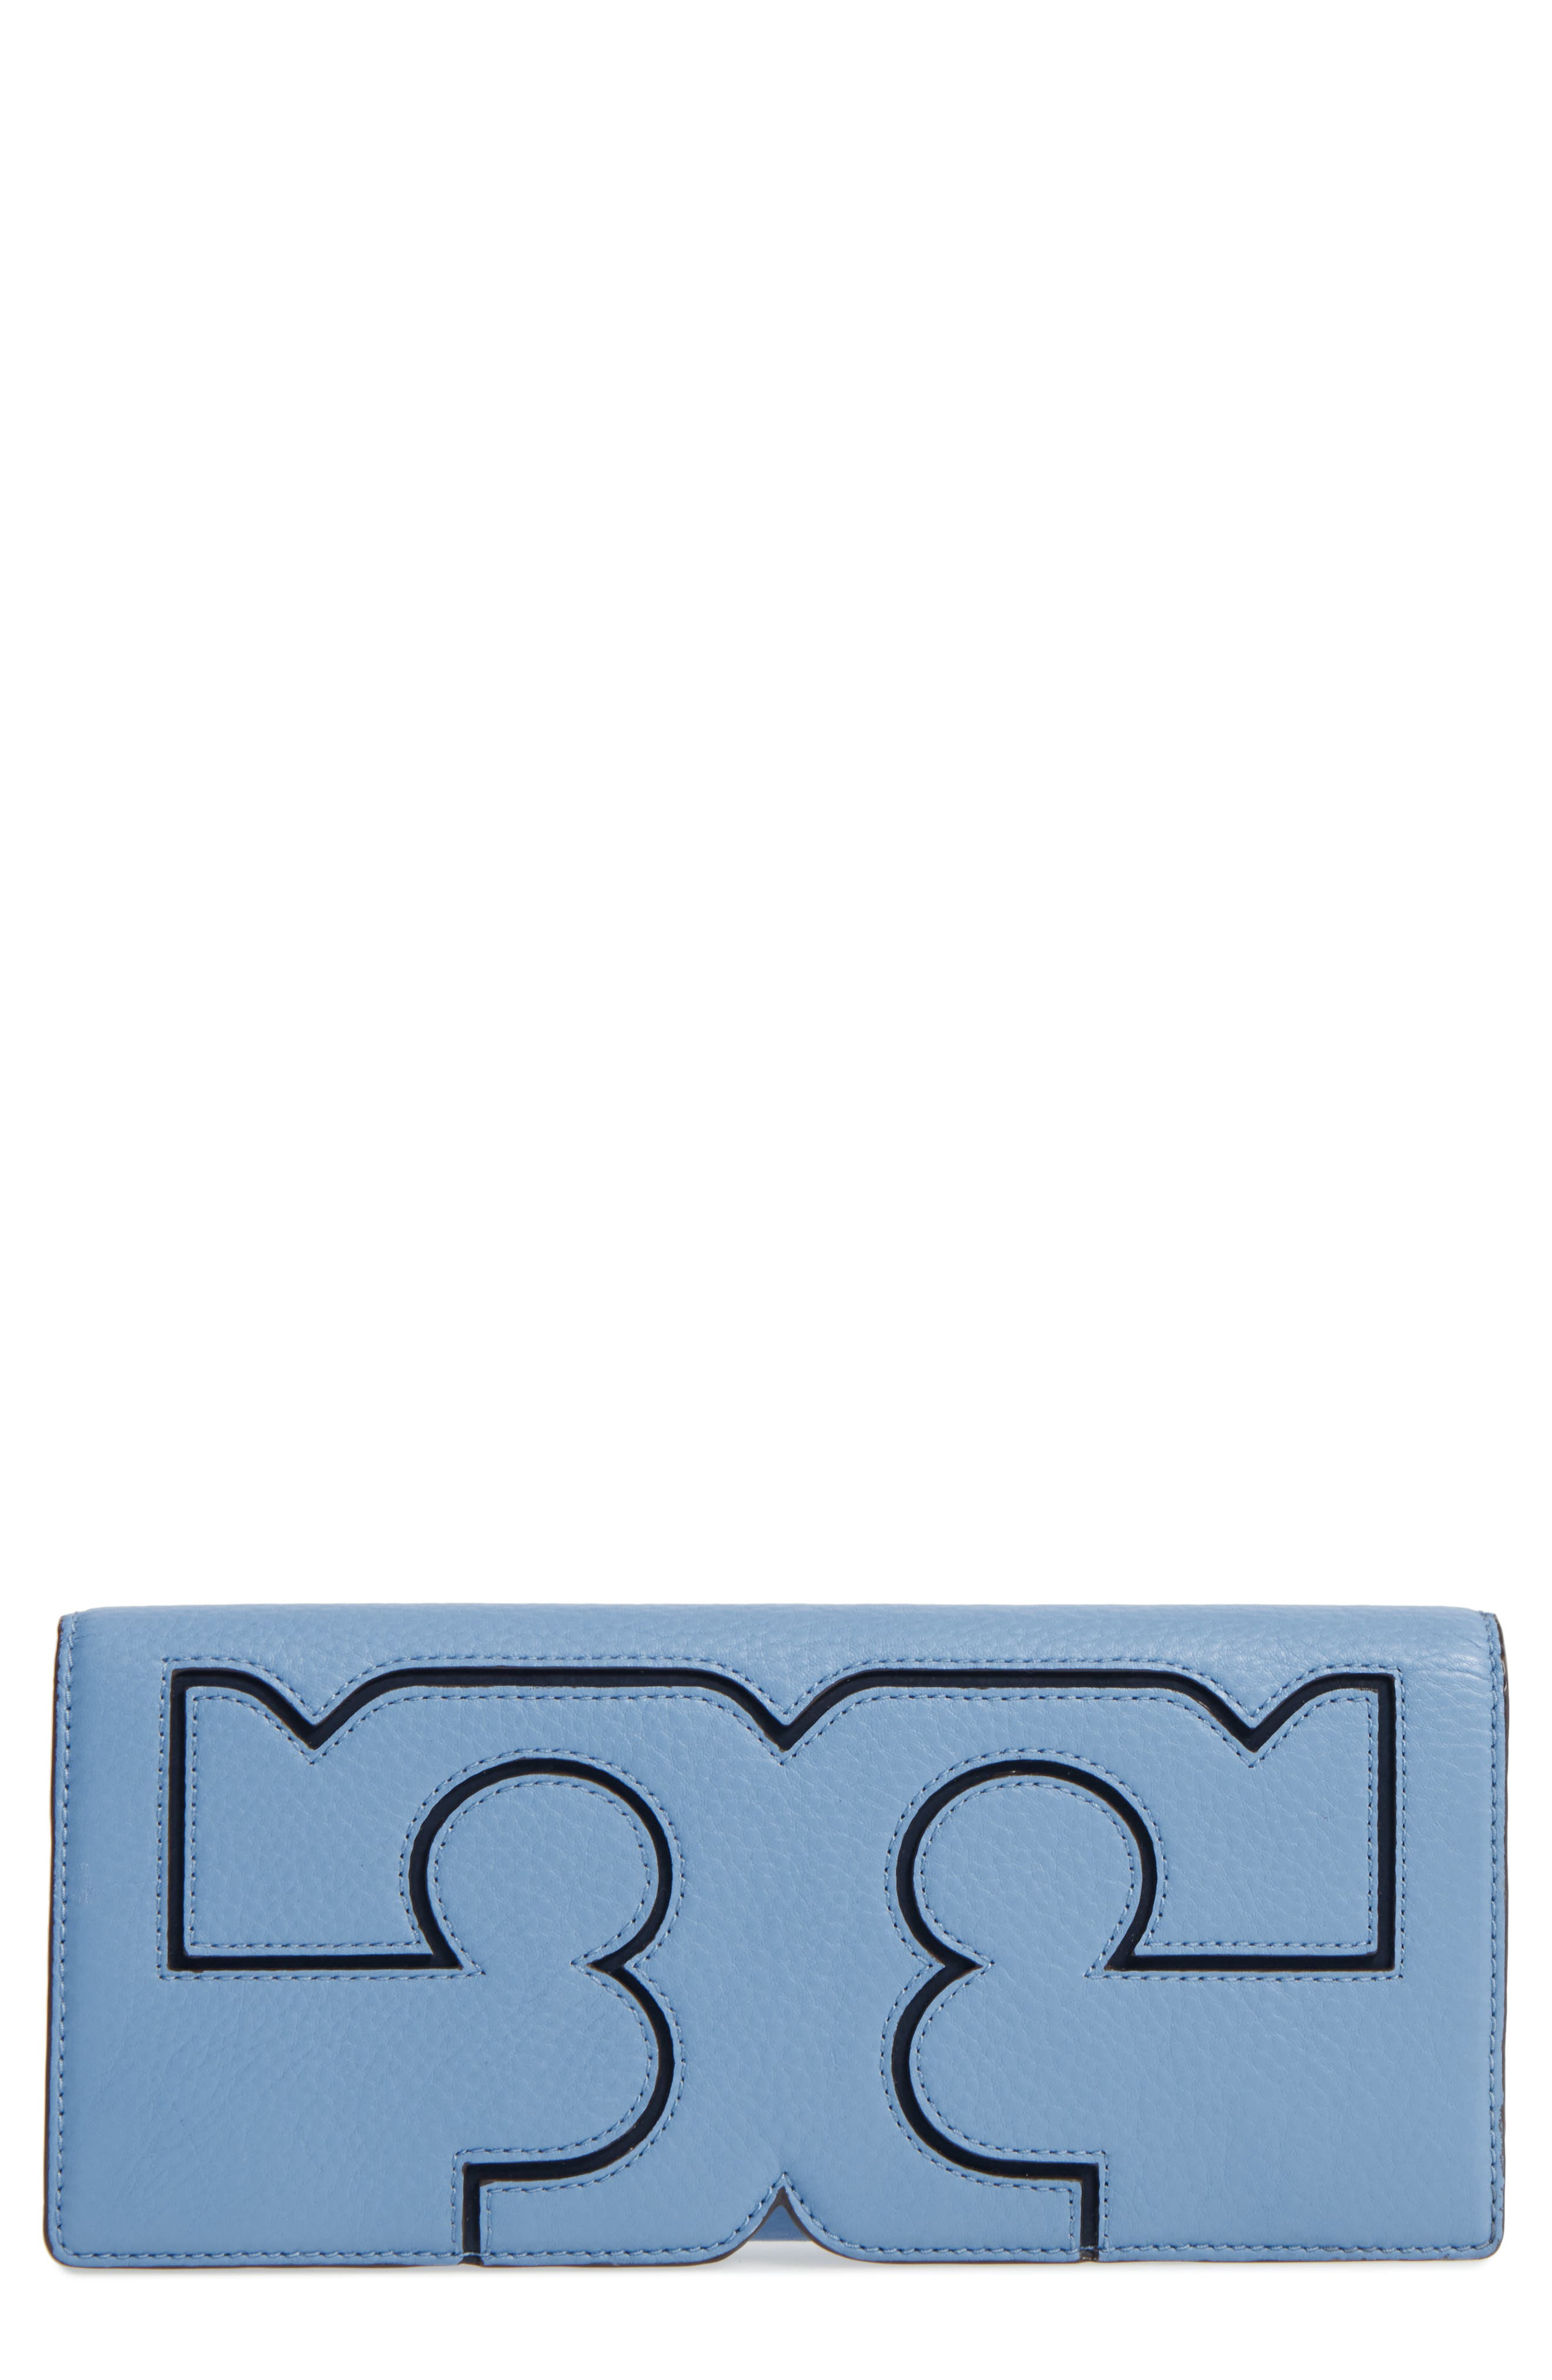 Main Image - Tory Burch Serif Leather Clutch